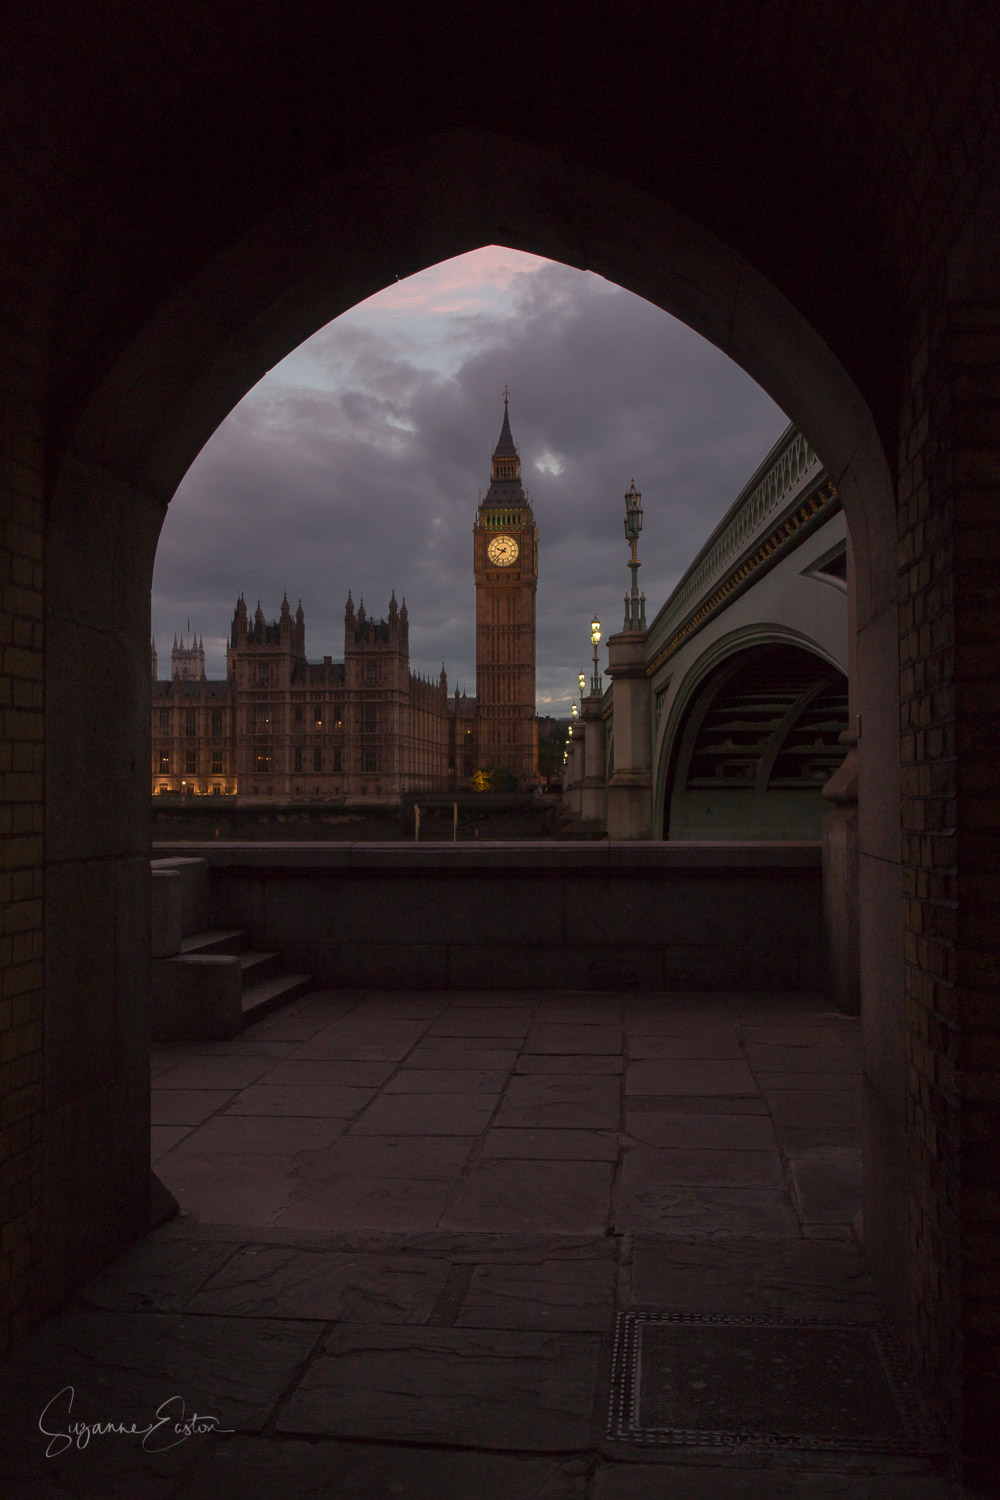 The Palace of Westminster in London from the South Bank.  A UNESCO heritage site and the home of British Parliament